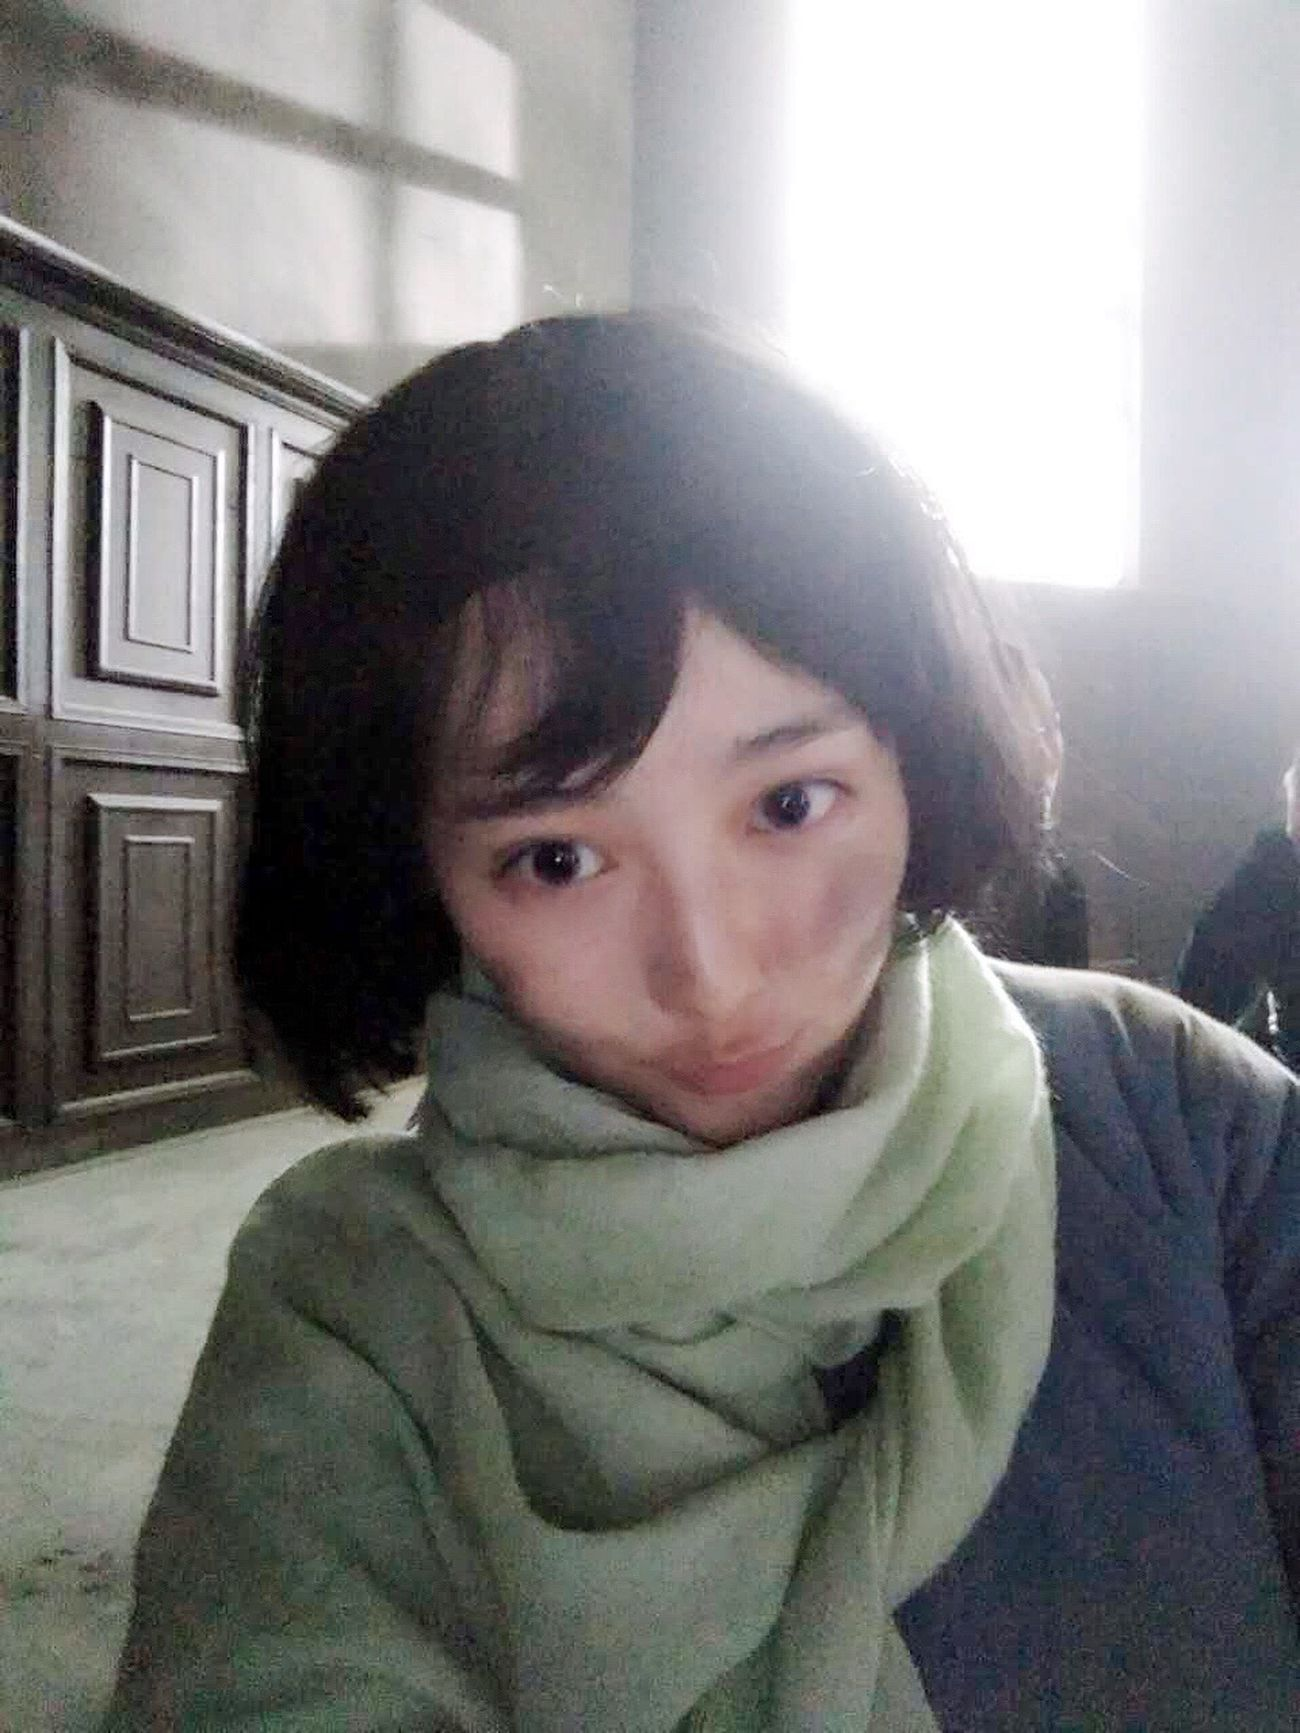 Looking At Camera Act Love Beauty Taking Photos Winter Me Hello World Hi! Looking At Camera Have Fun Portrait Learn That's Me Check This Out Faces Of EyeEm Uniqe Asian Girl Innocent Face